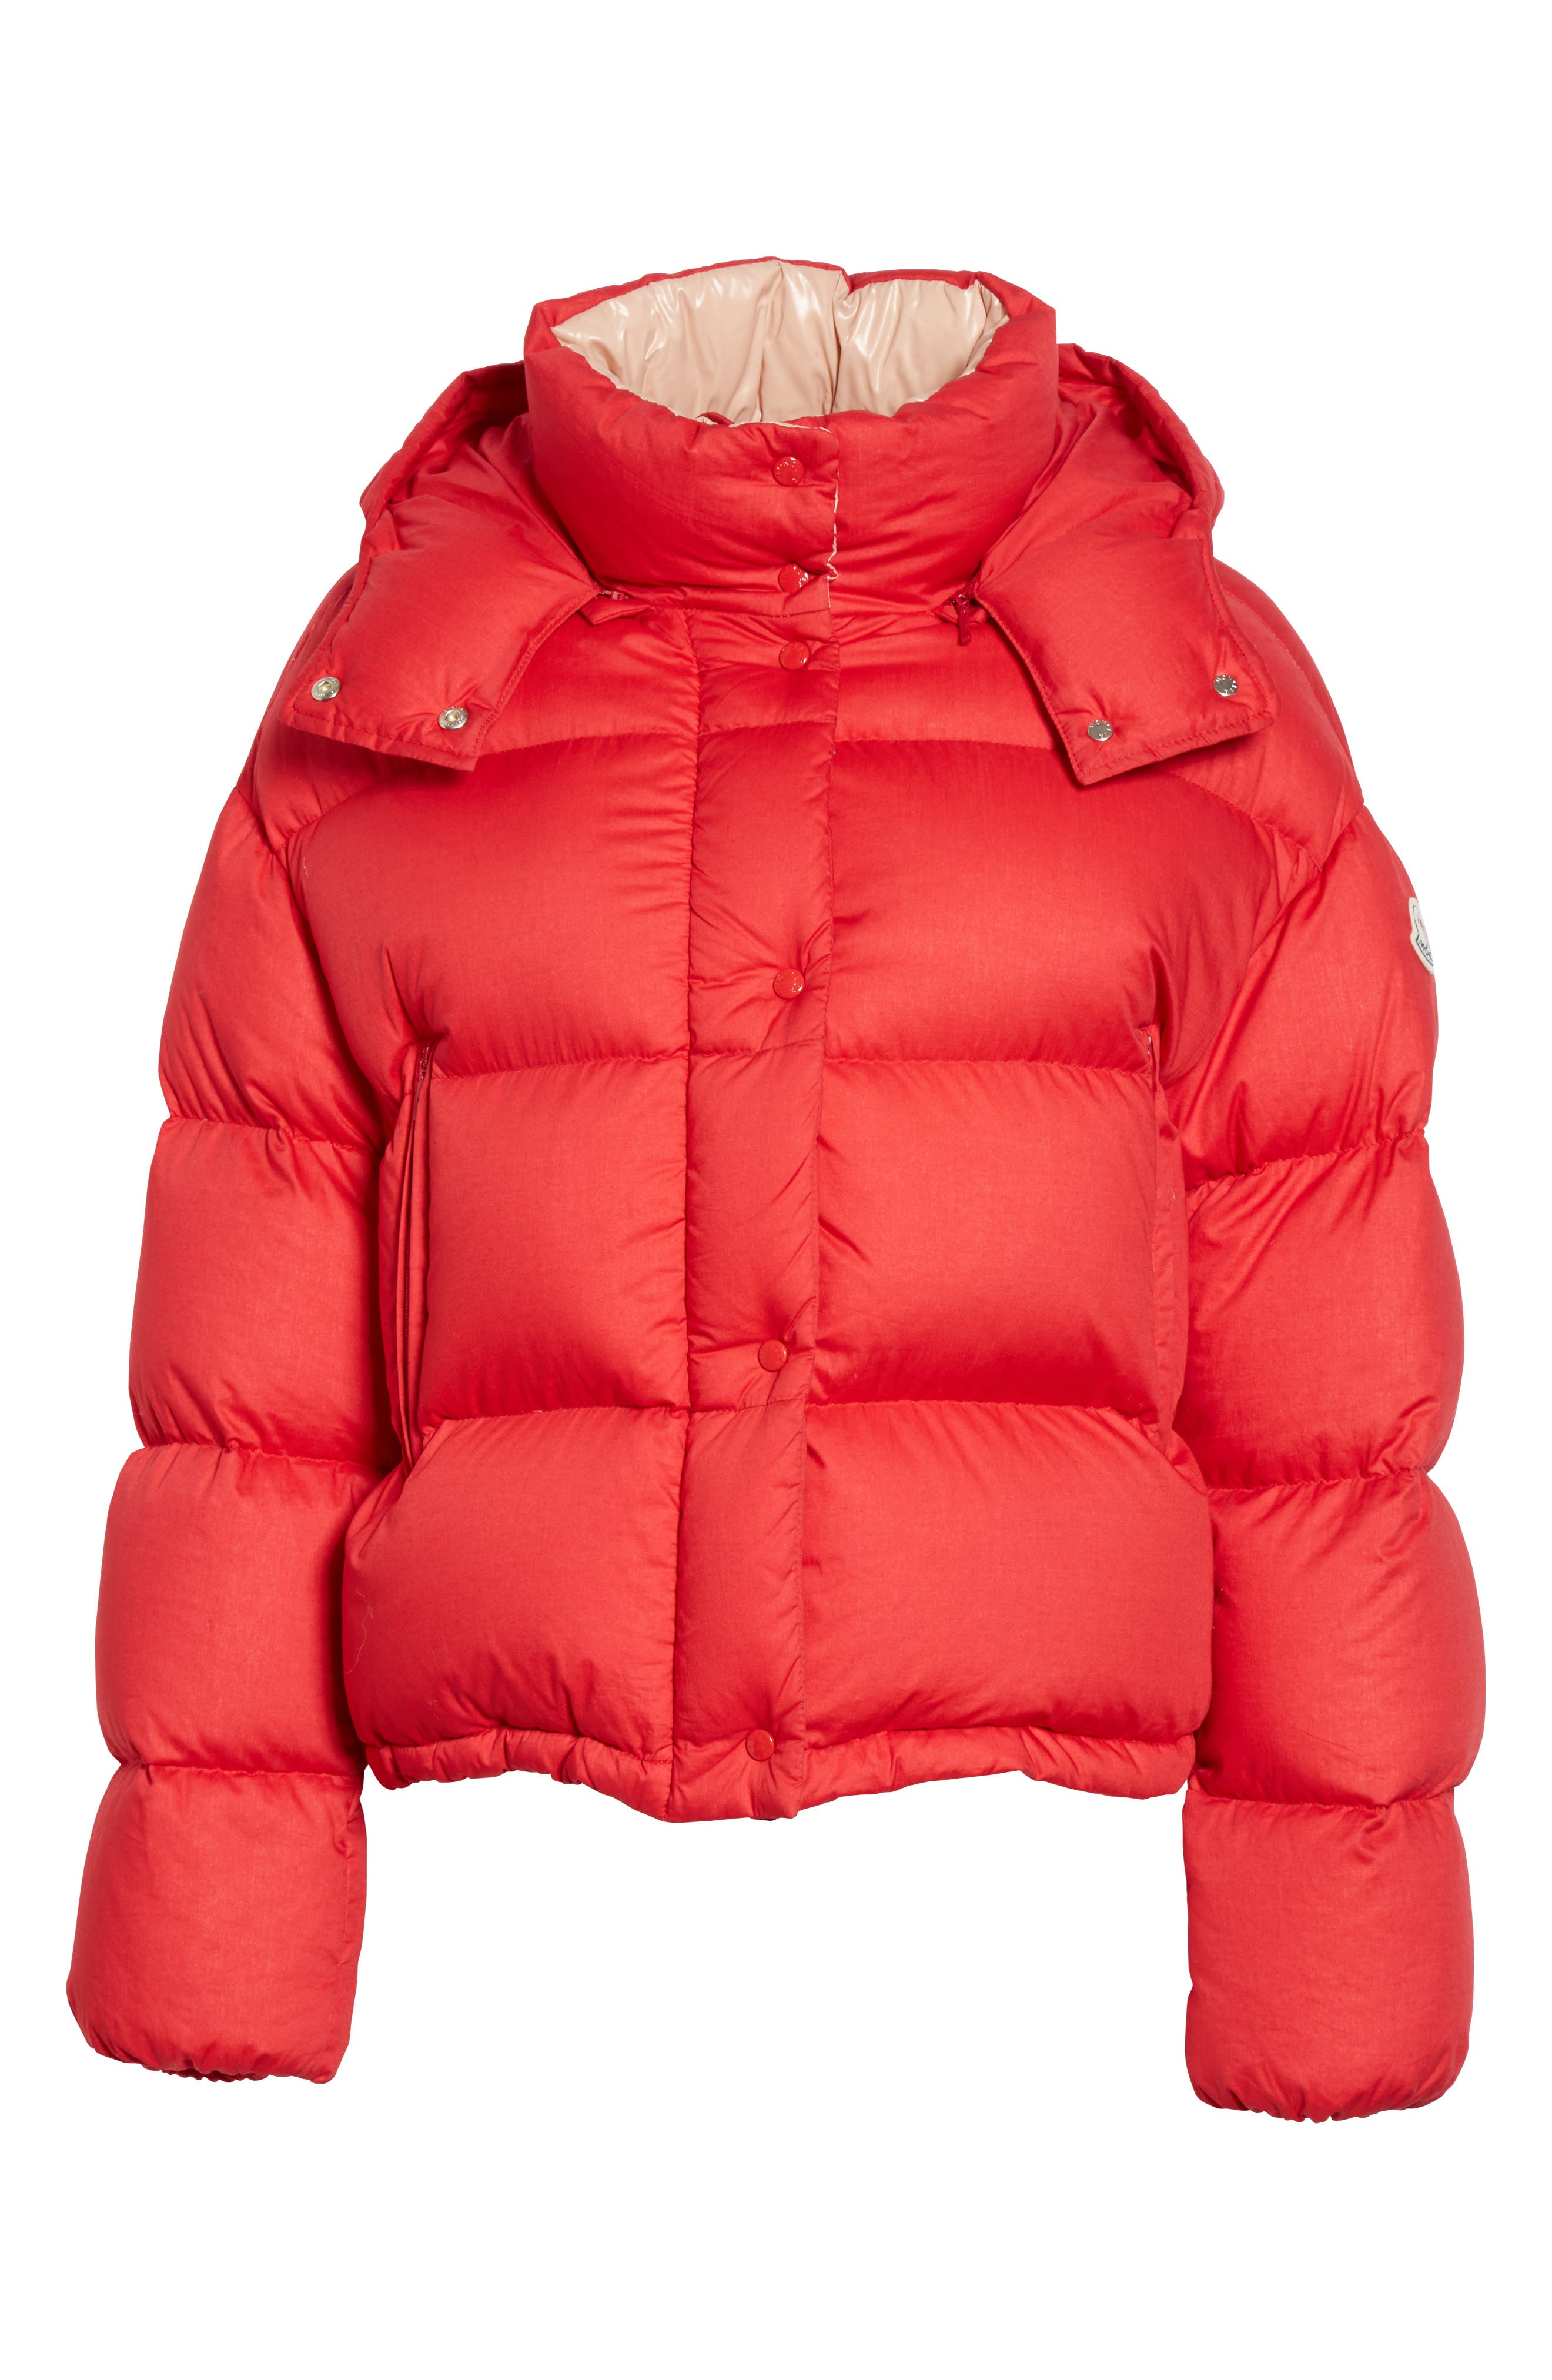 Paeonia Quilted Puffer Jacket,                             Alternate thumbnail 5, color,                             RED